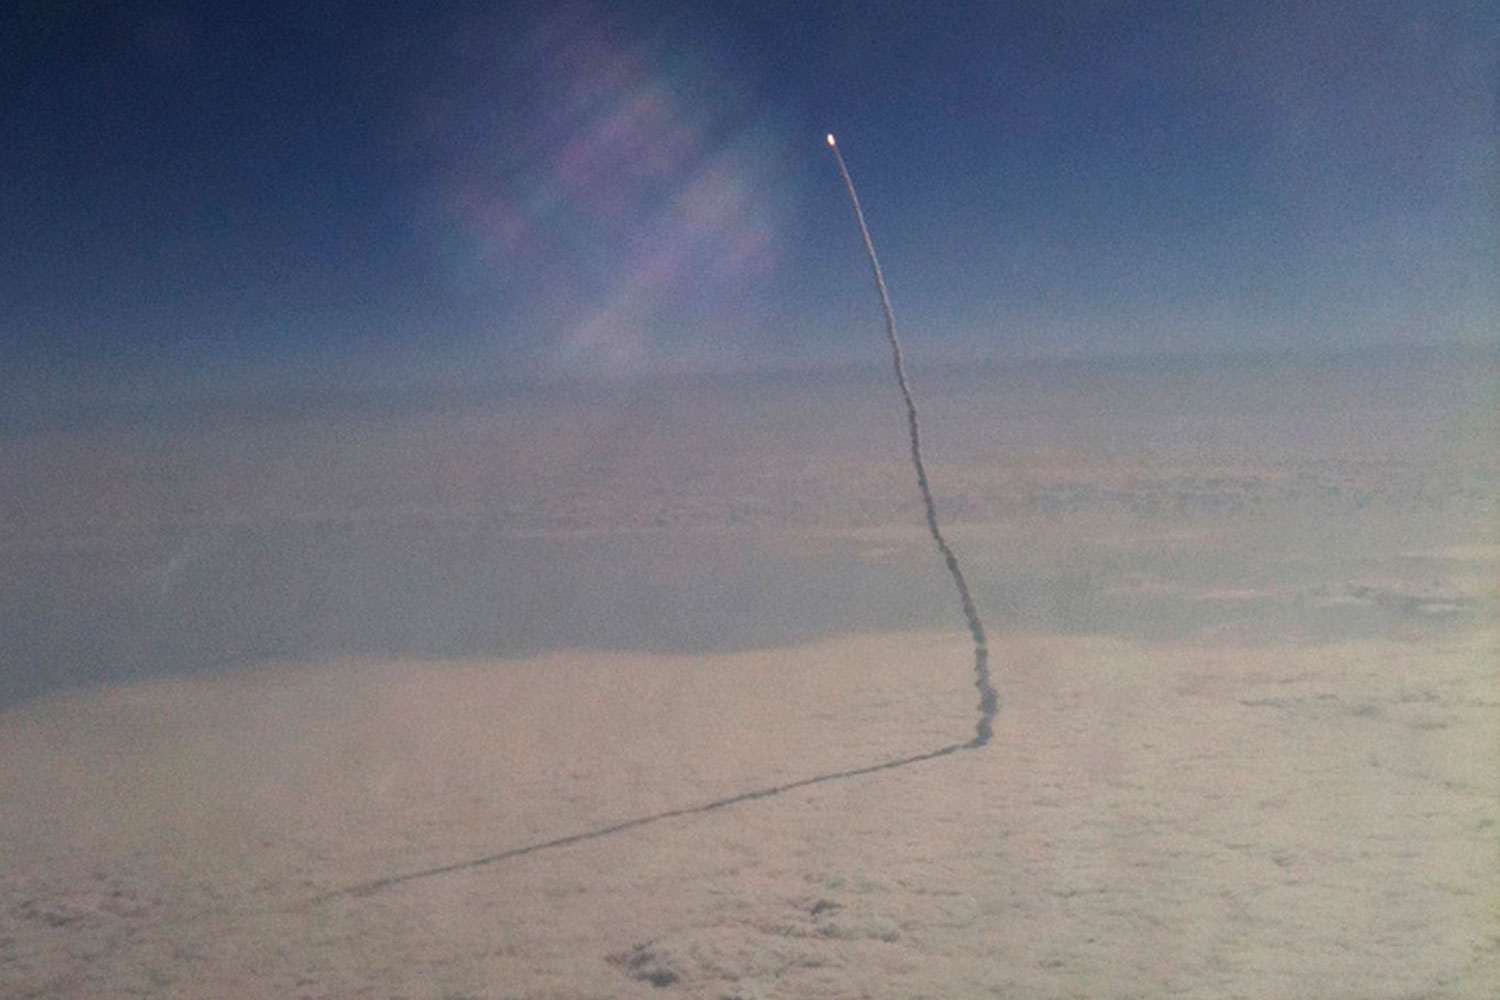 May 16, 2011. This citizen journalism photo taken with a cell phone by Stefanie Gordon aboard a passenger flight from New York to Palm Beach, Fla. shows the space shuttle Endeavor as it streaks toward orbit shortly after liftoff.